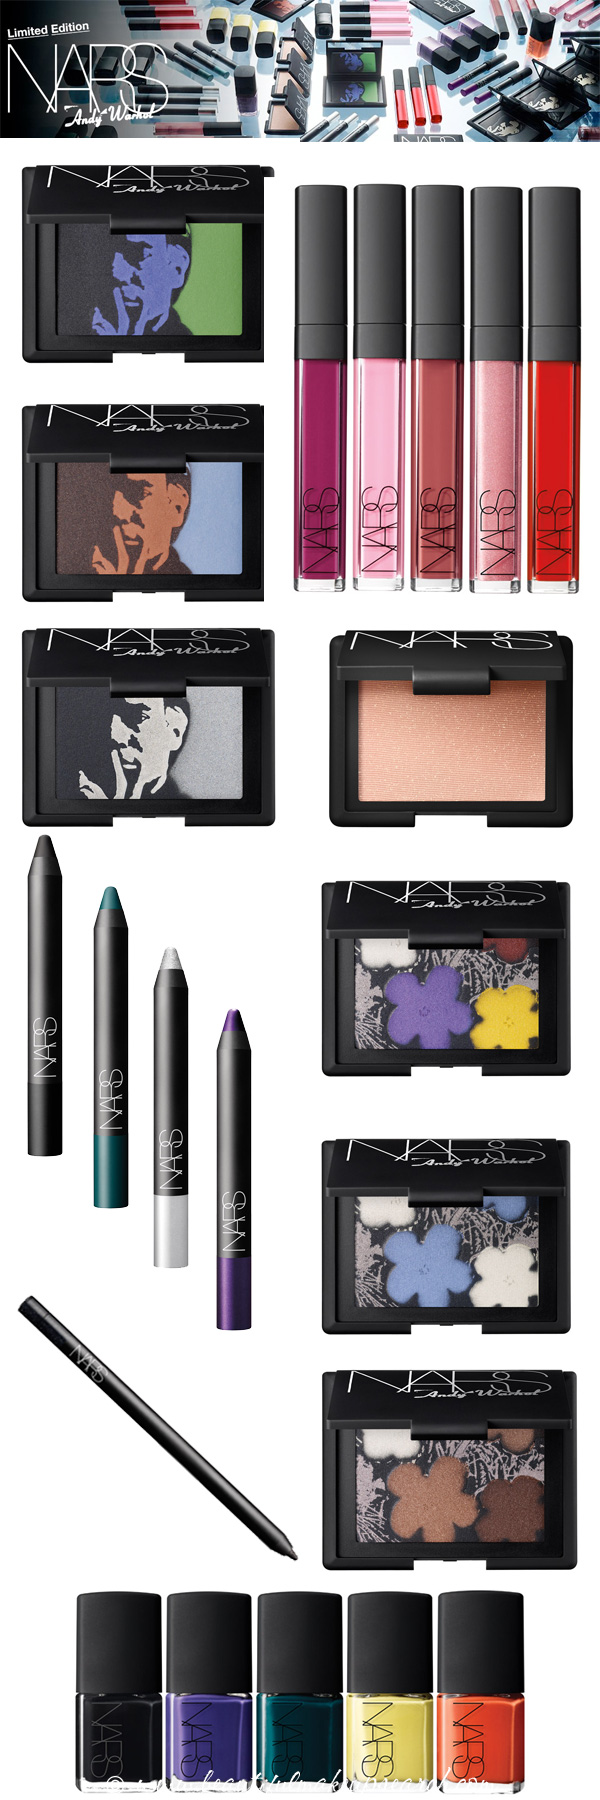 NARS Andy Warhol Makeup Collection